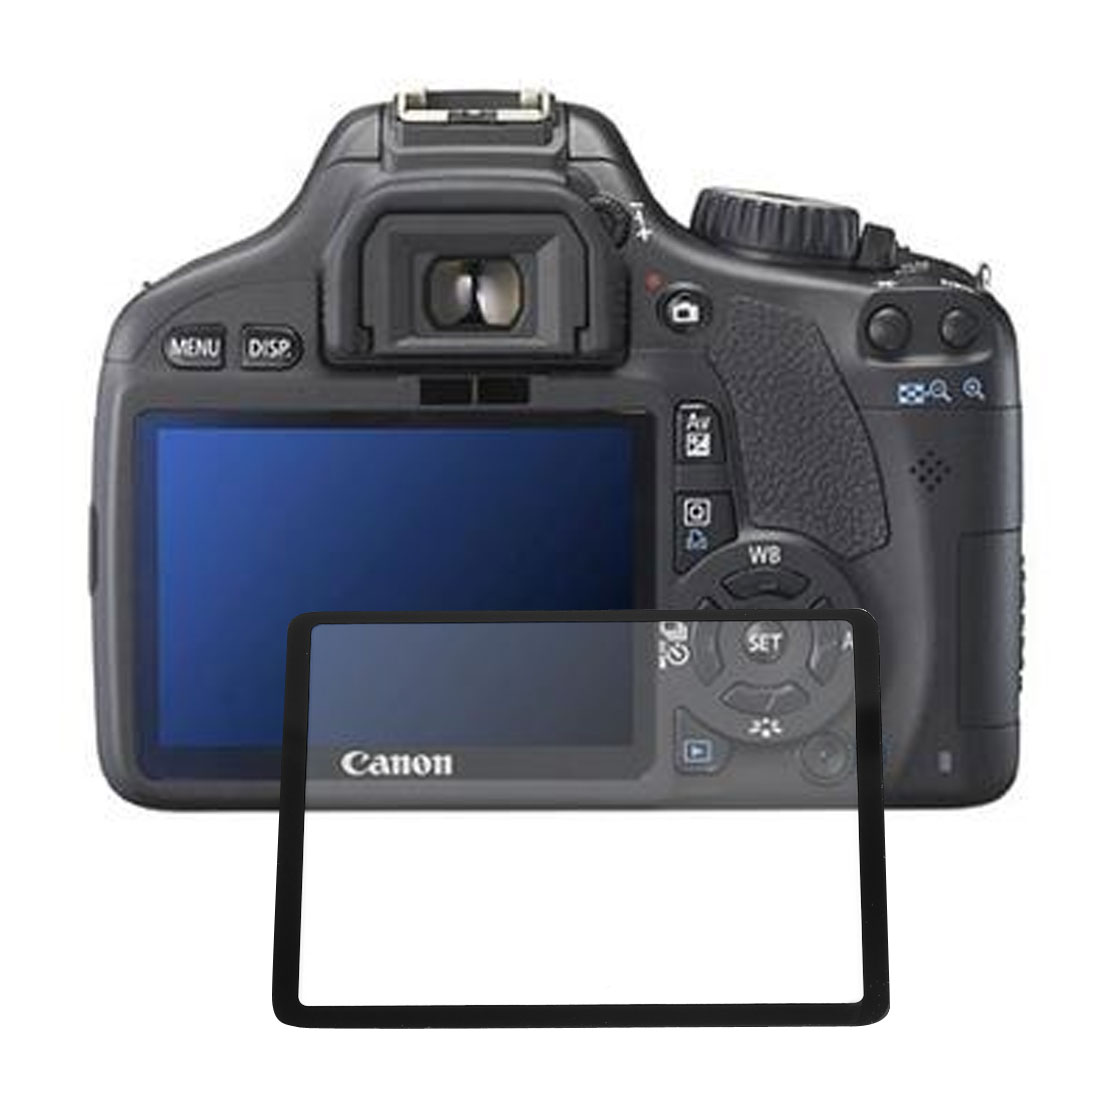 Clear Black LCD Screen Optical Glass Guard for Canon 500D 450D Digital Camera